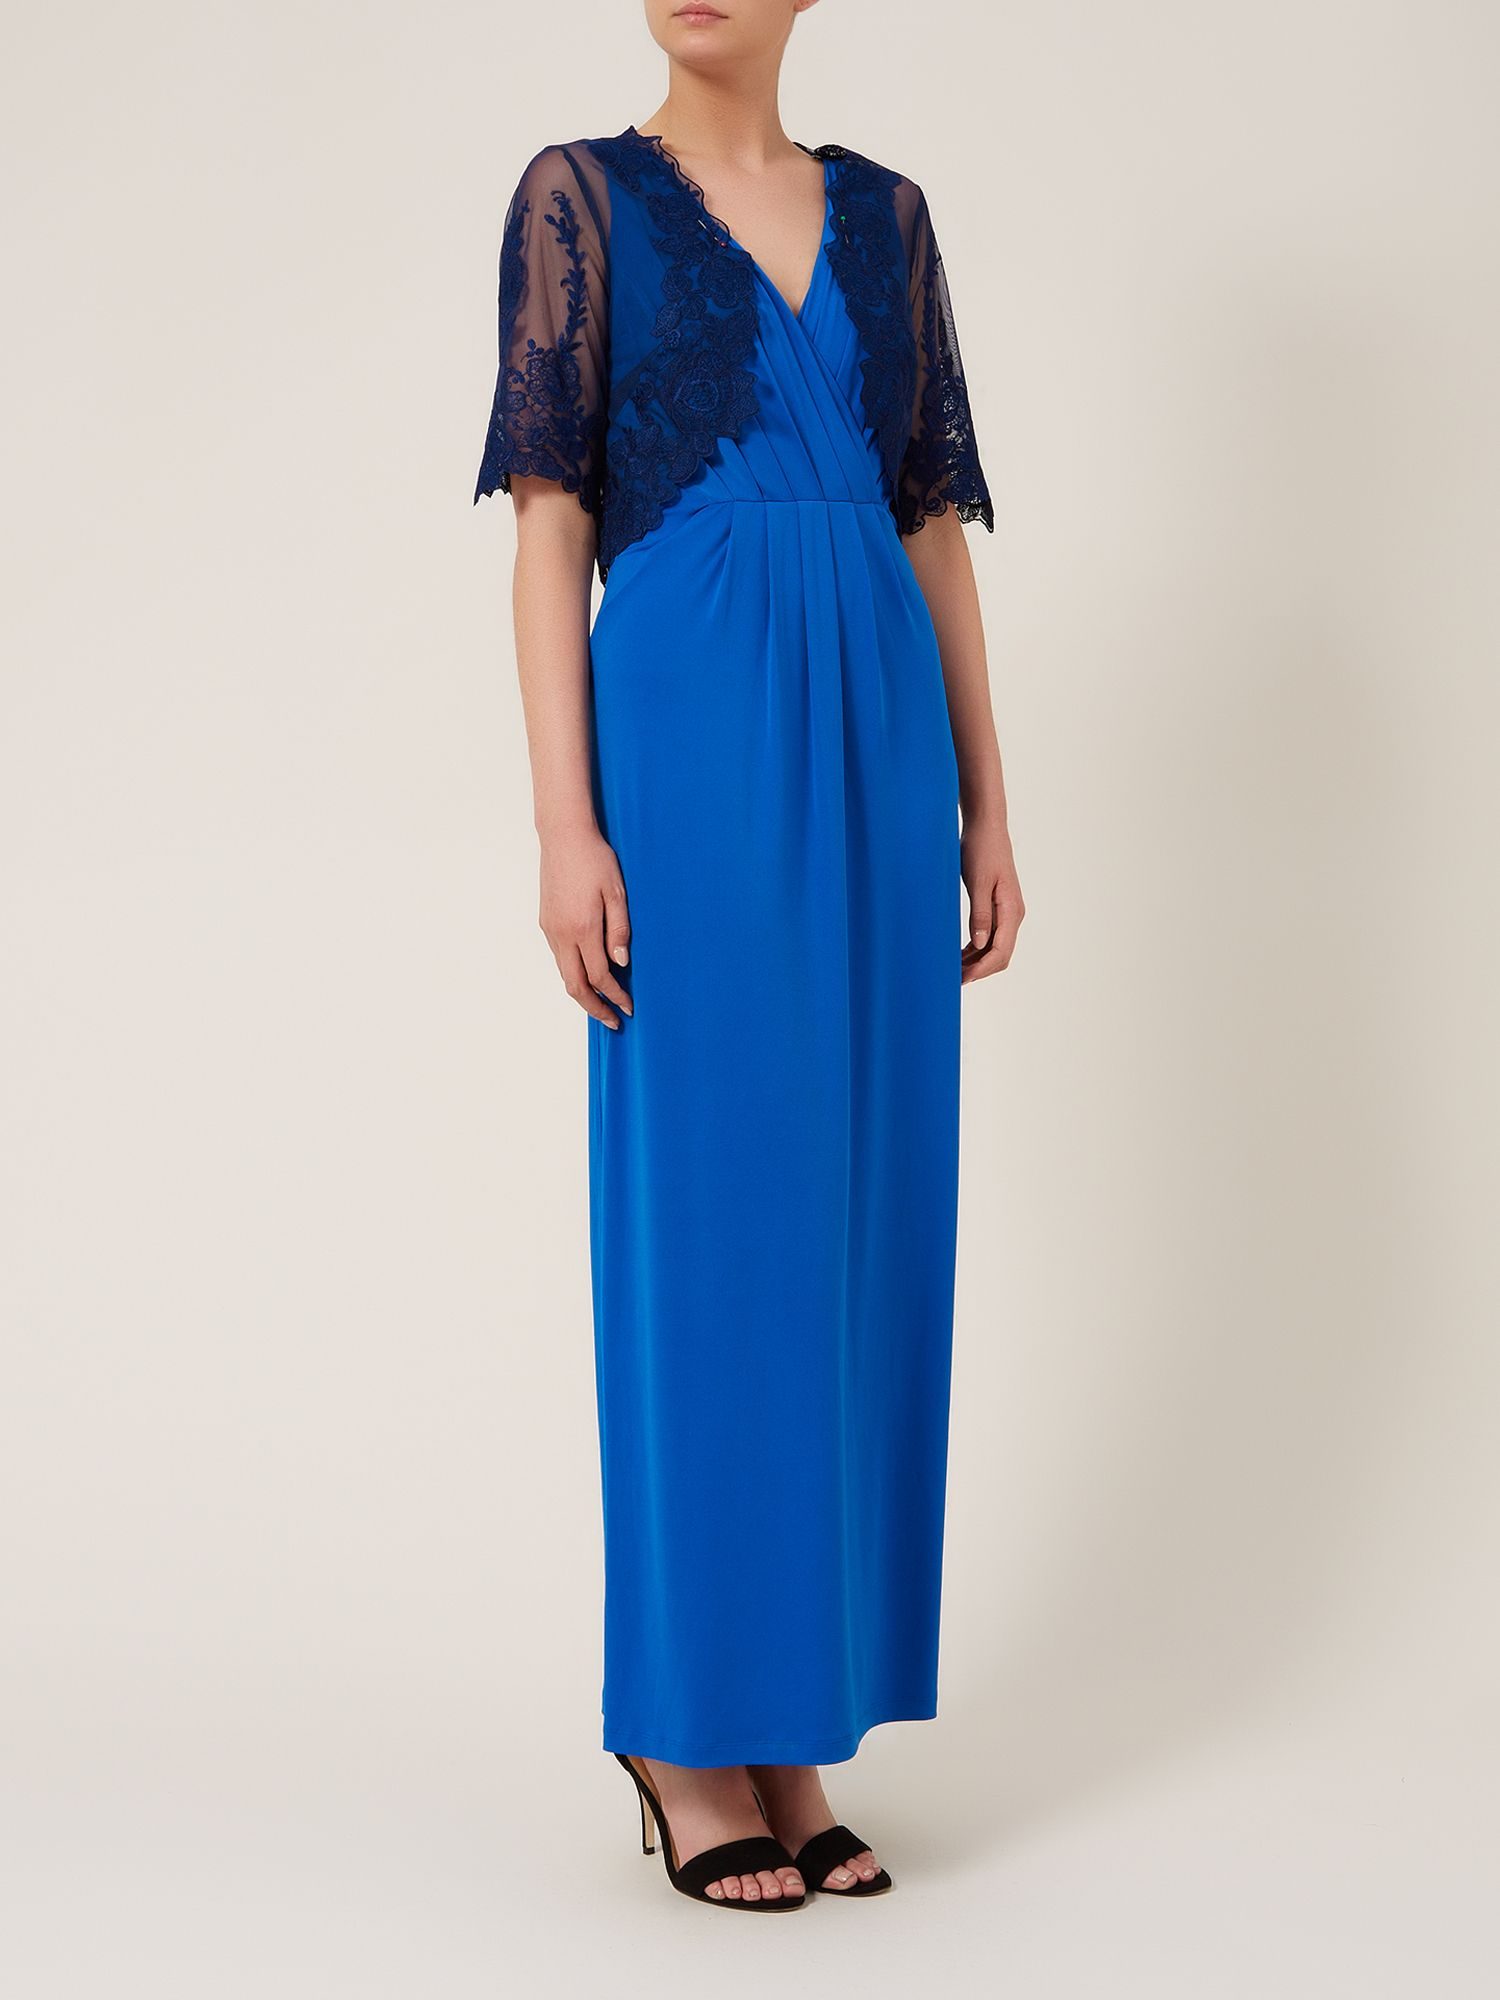 A Dress Maxi for the Street Look?